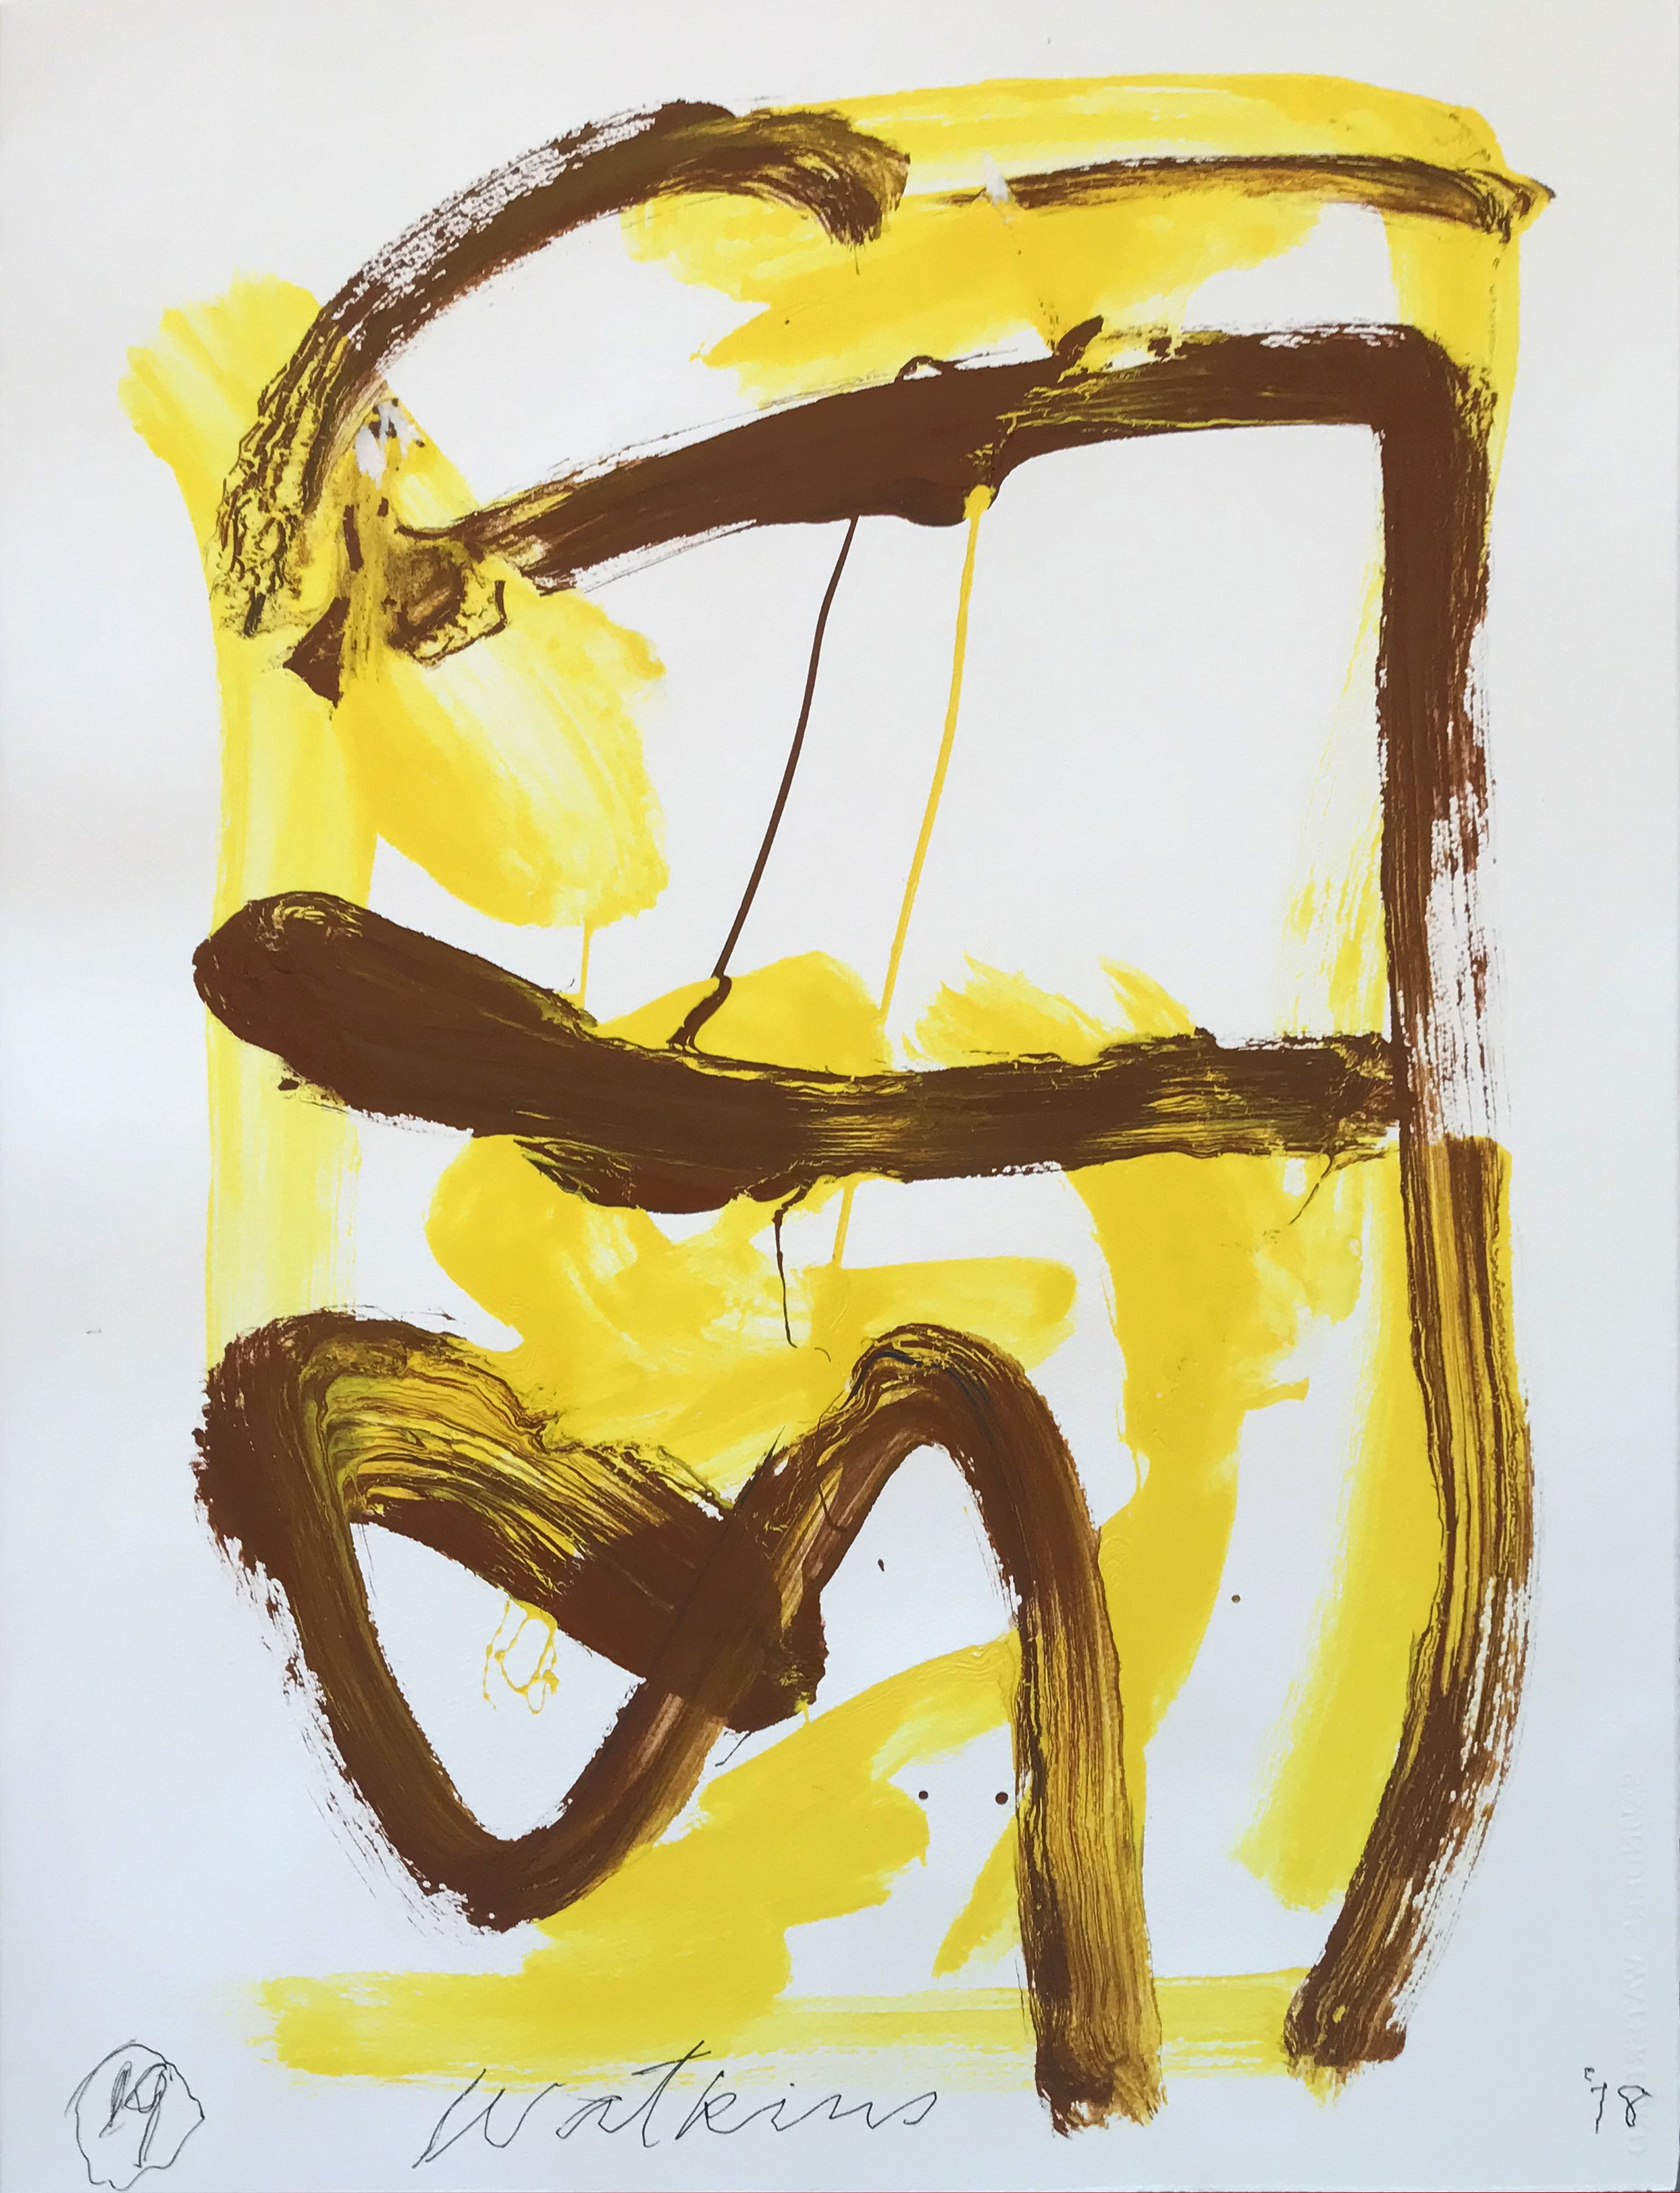 DICK WATKINS  Untitled drawing 19 , 2018 acrylic on 300gsm paper 76 x 56 cm